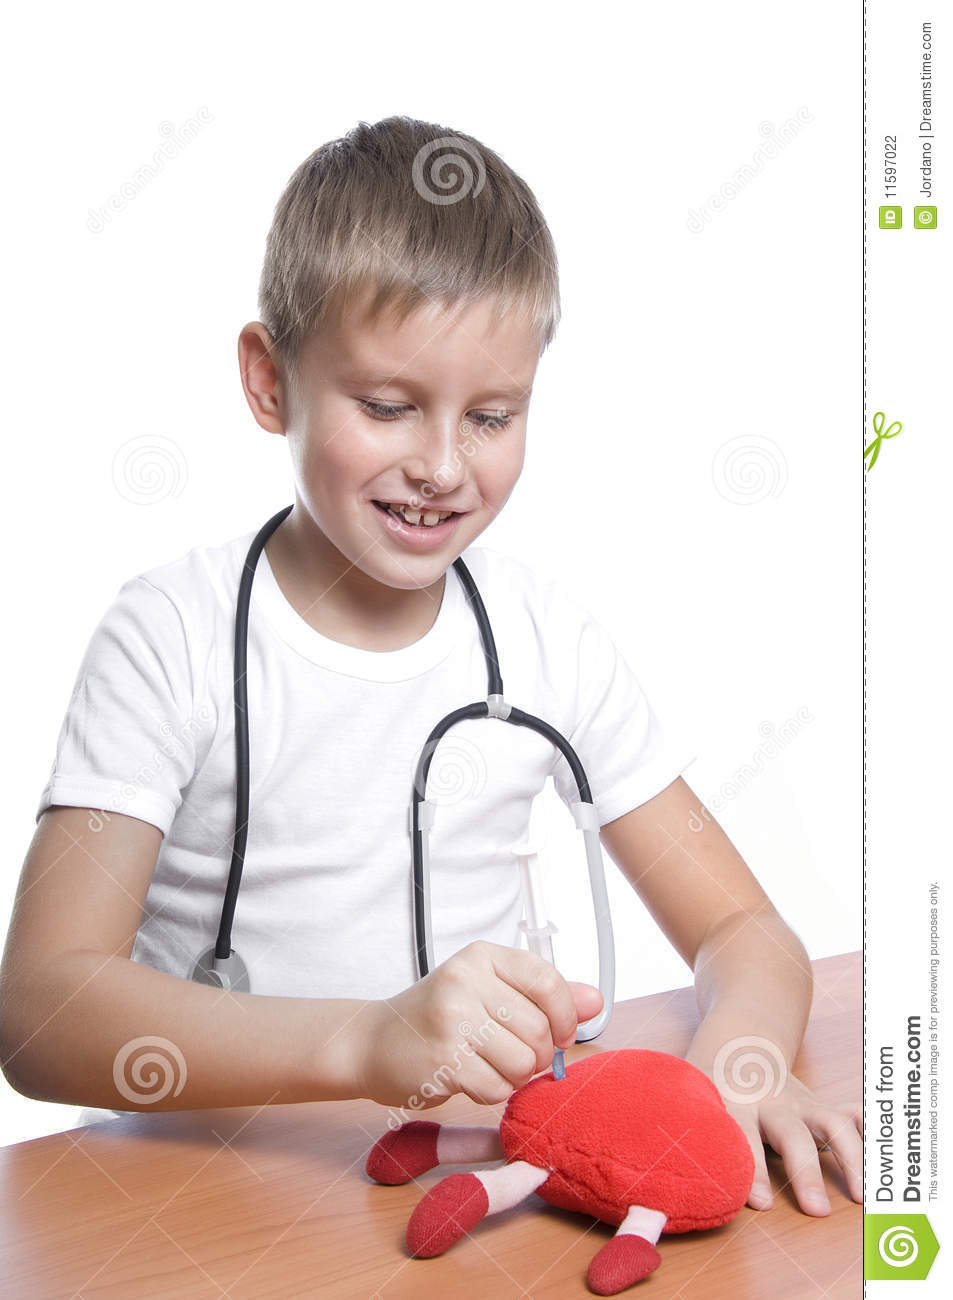 Young Boy Doctor Stock Photography - Image: 11597022